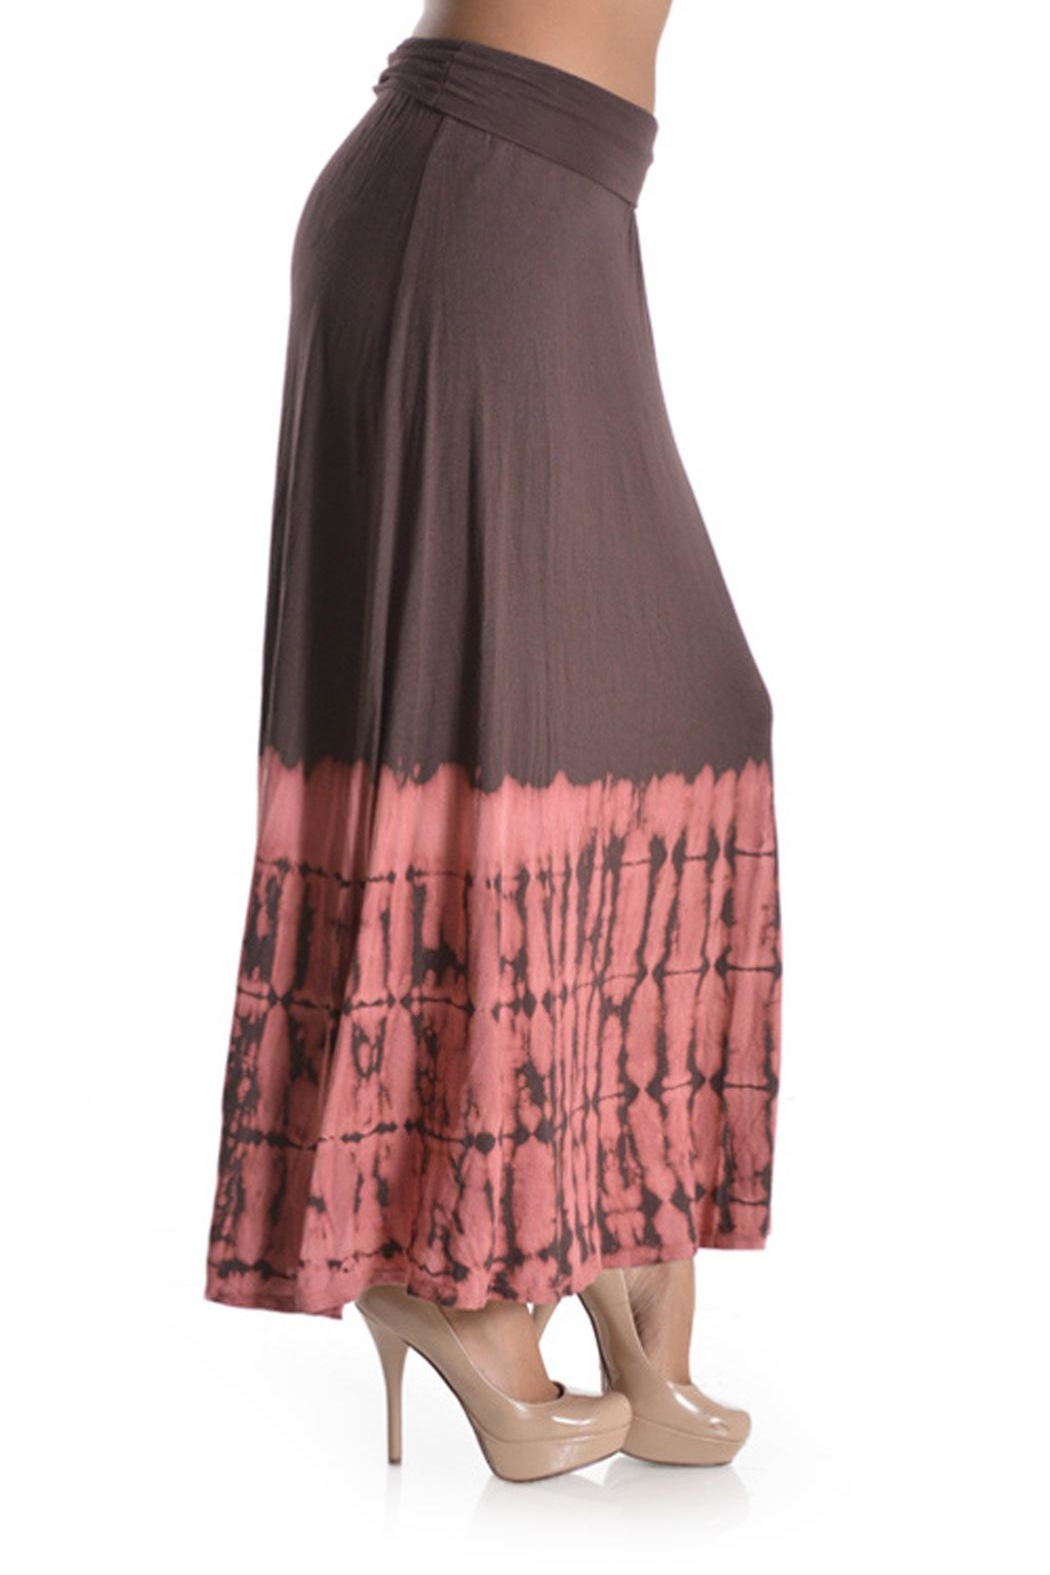 T Party Tie-Dye Mocha-Coral Maxi-Skirt - Front Full Image